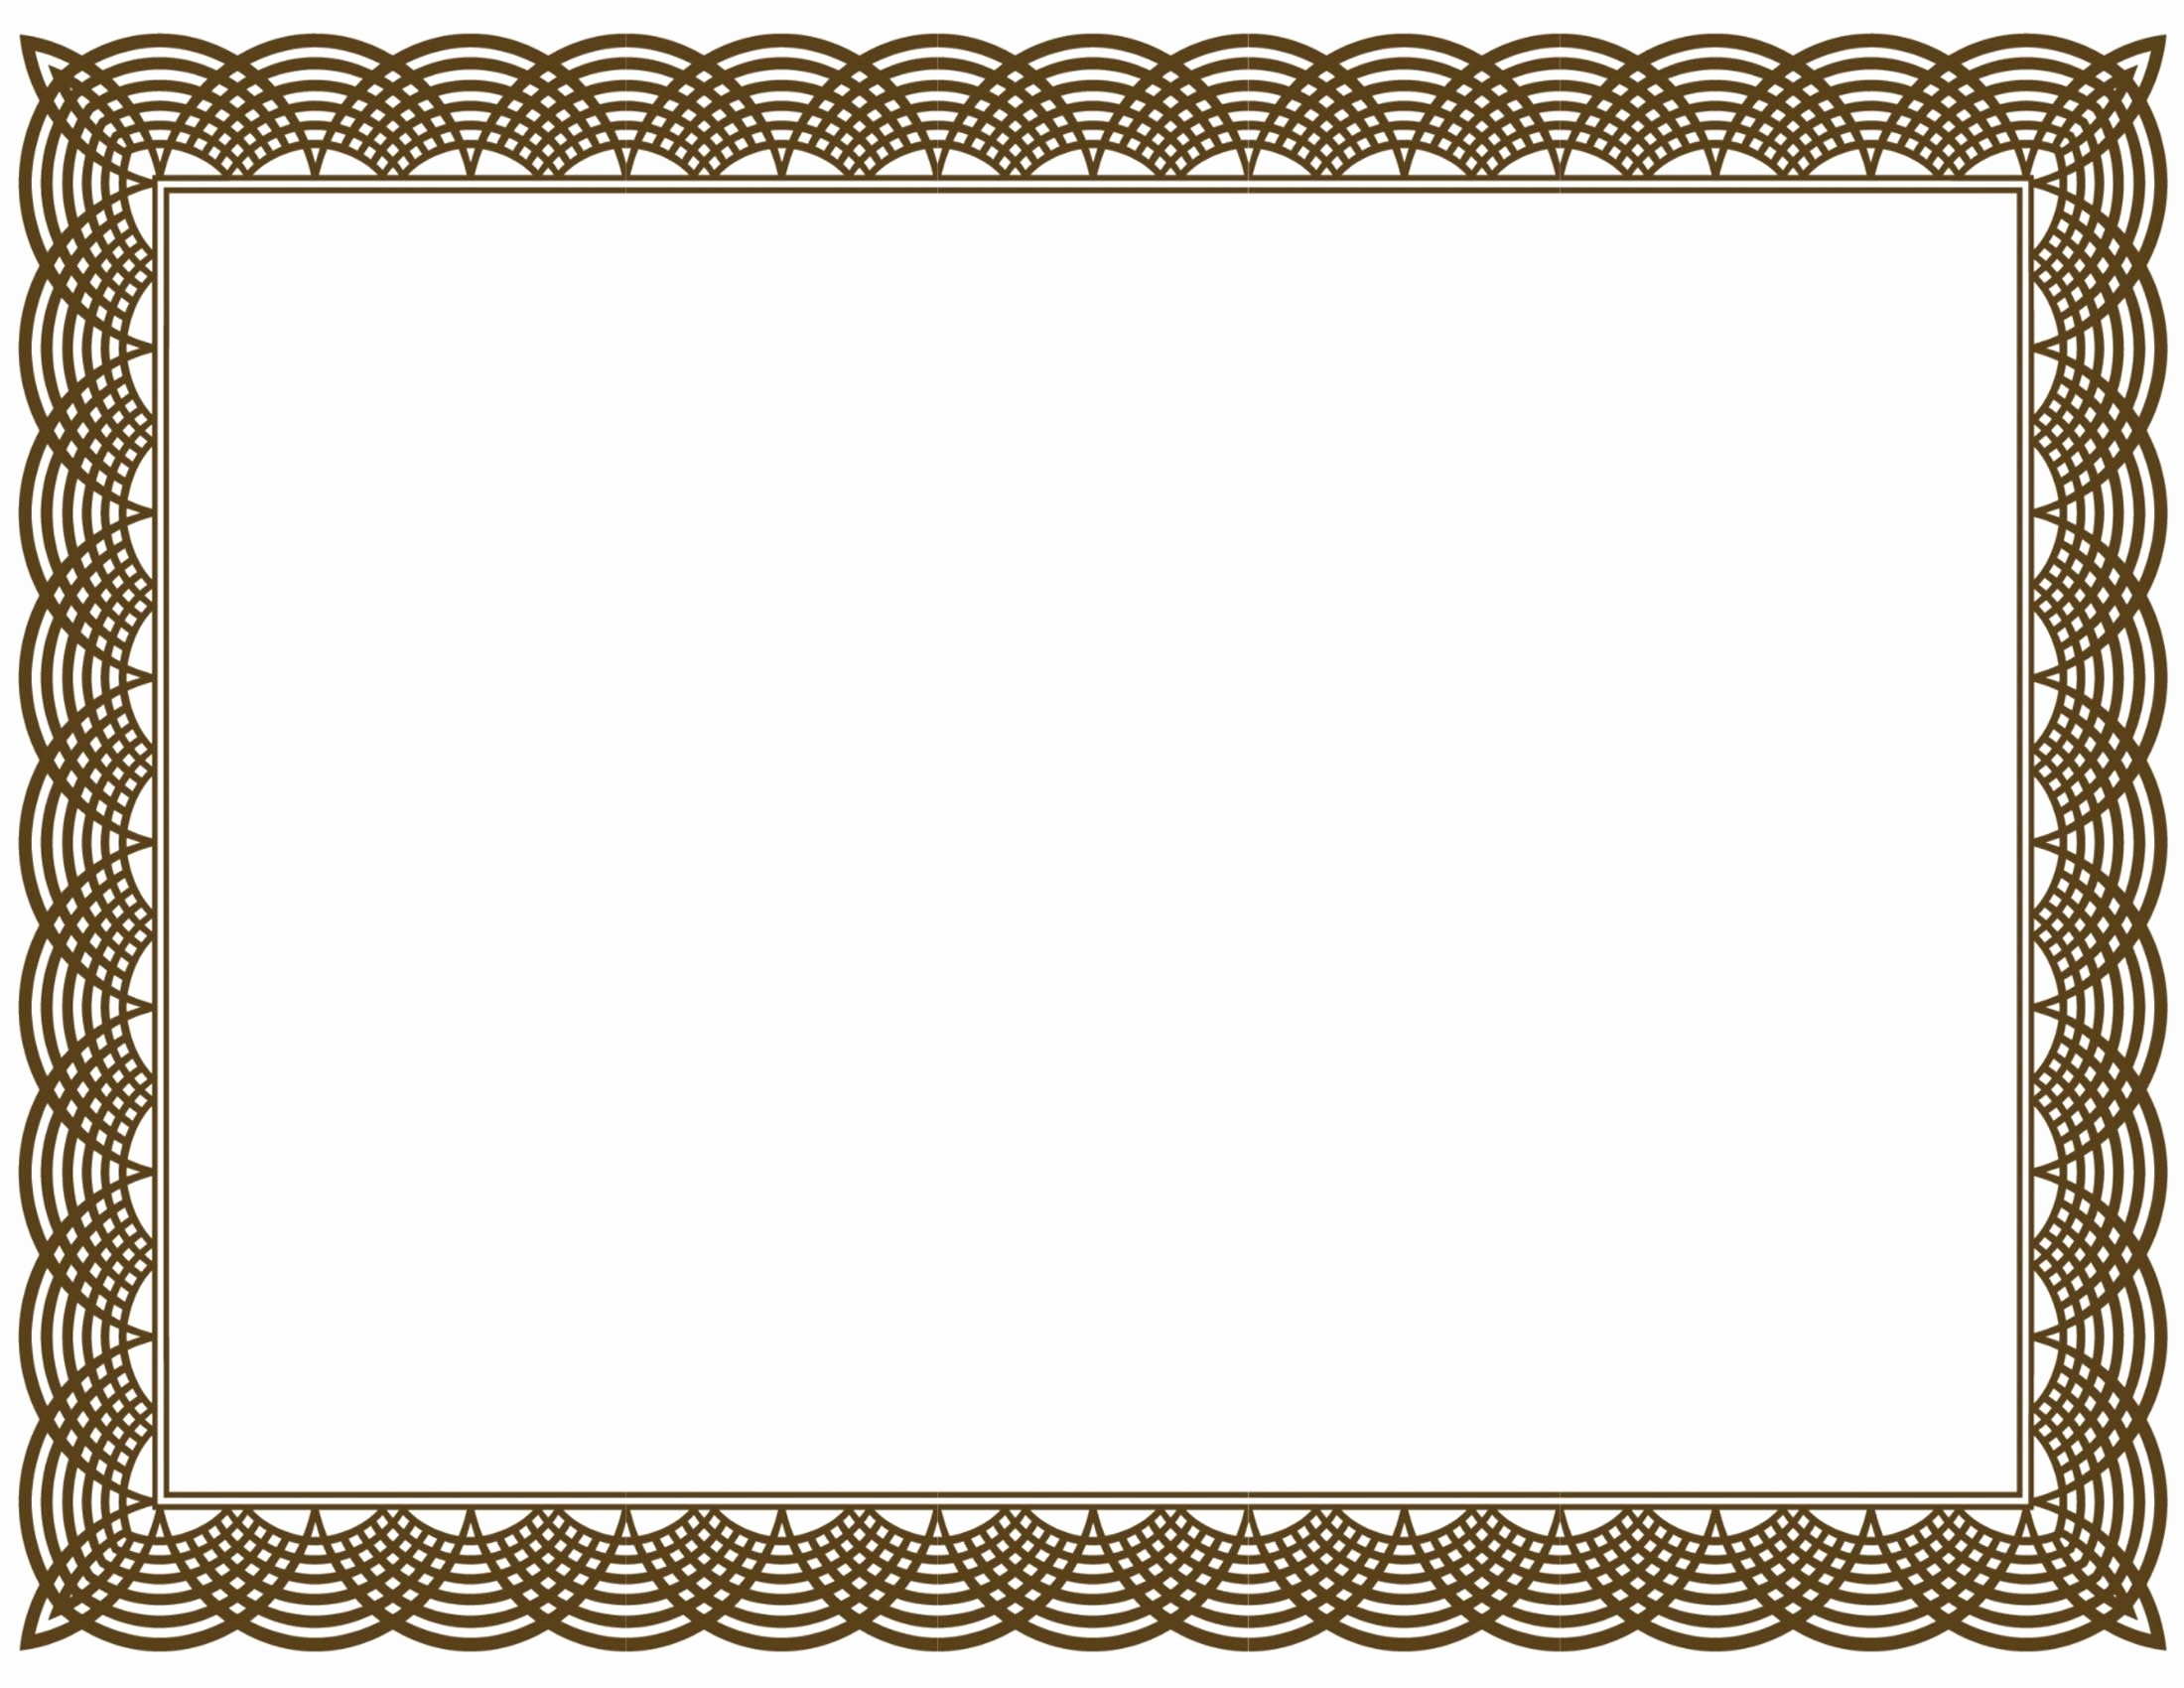 Certificate Border Design Free Download Luxury 20 Printable Certificate Borders